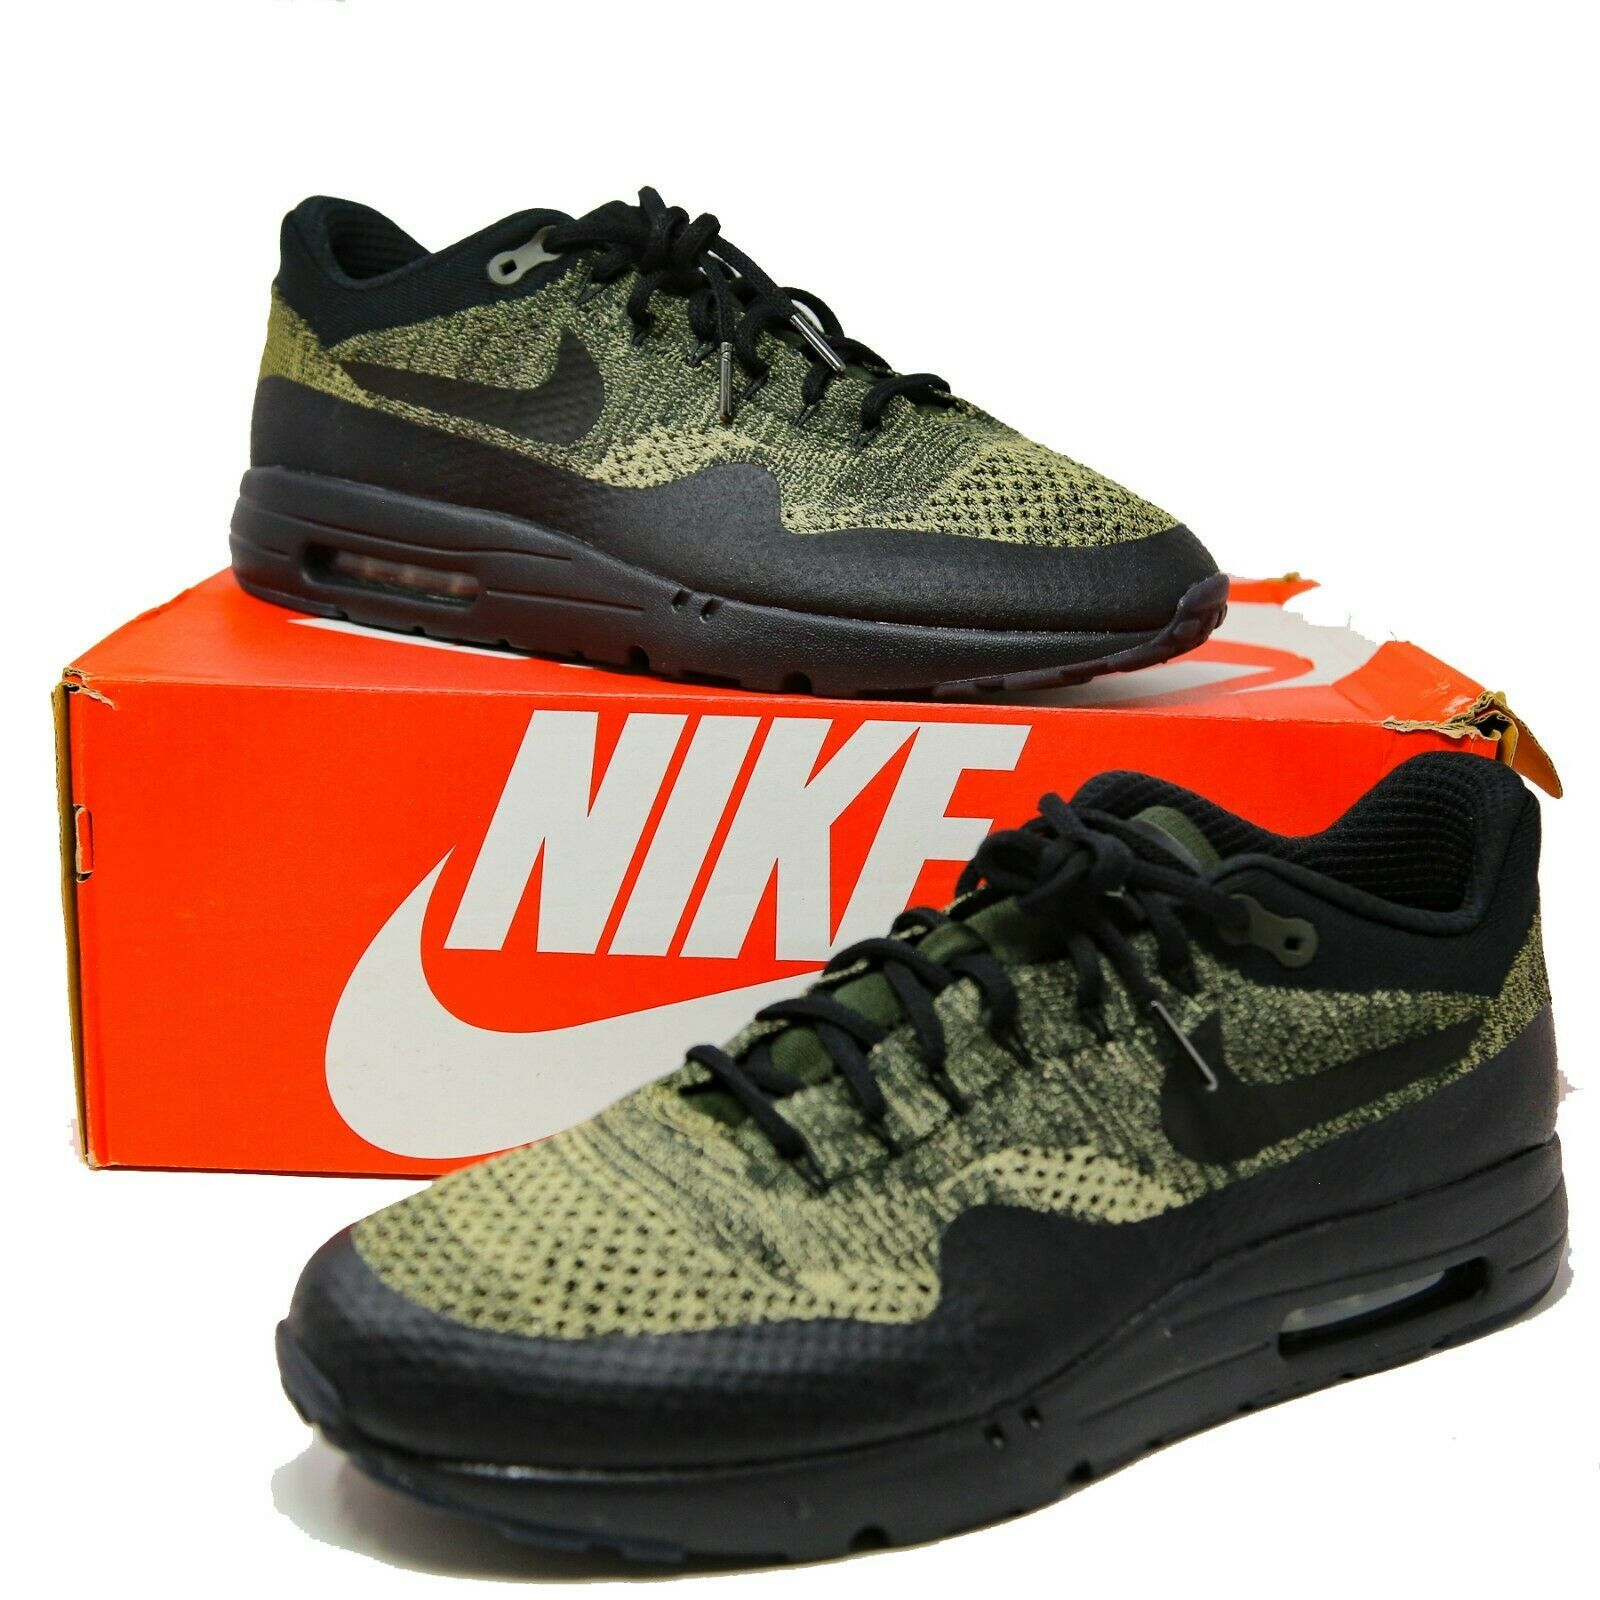 9810c0c69e Nike Air Max 1 Ultra FlyKnit FK Olive Black Sequoia sz 14 856958-203 EUR  48,5 - $128.69 · Advanced search for Nike Air Shoes